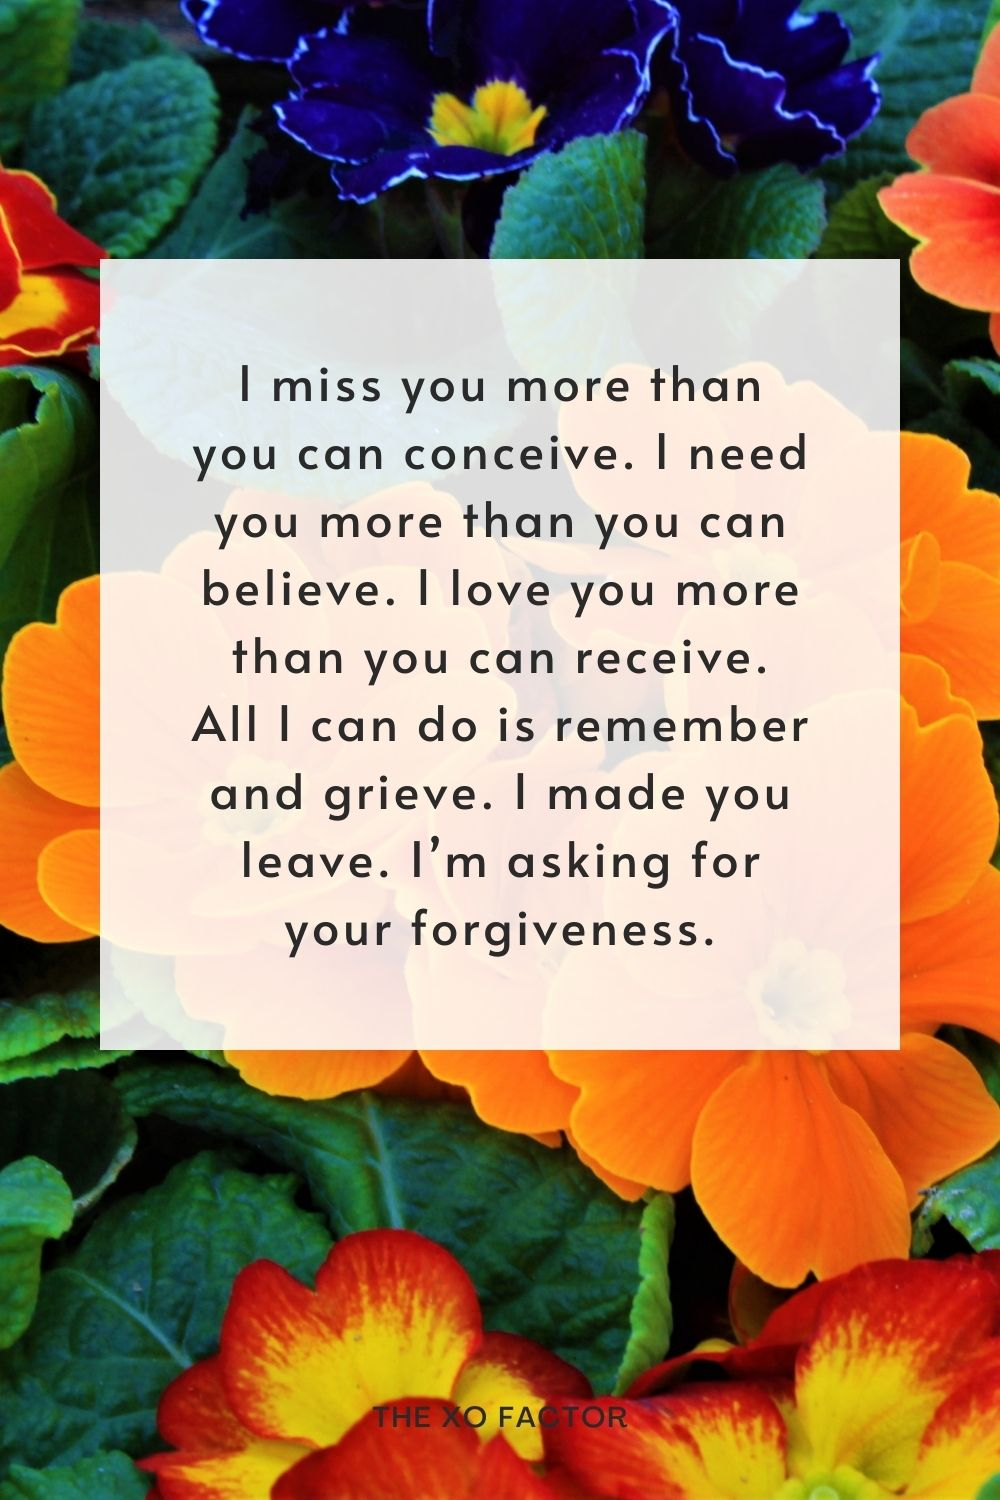 I miss you more than you can conceive. I need you more than you can believe. I love you more than you can receive. All I can do is remember and grieve. I made you leave. I'm asking for your forgiveness.